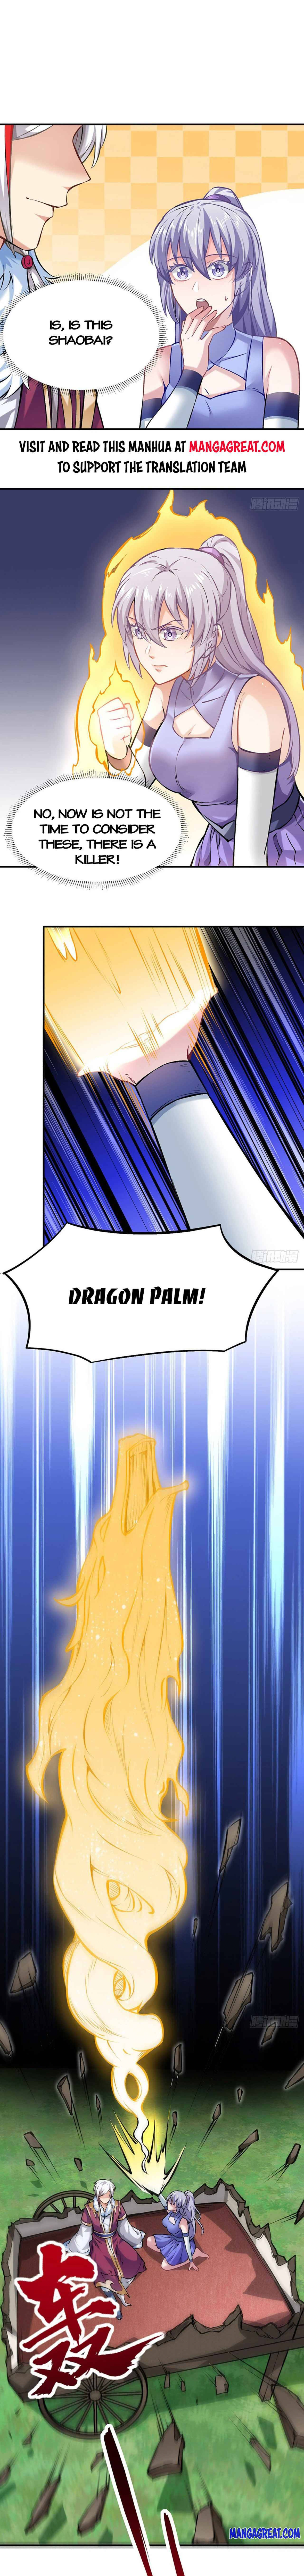 Martial Arts Reigns - chapter 319 - #1